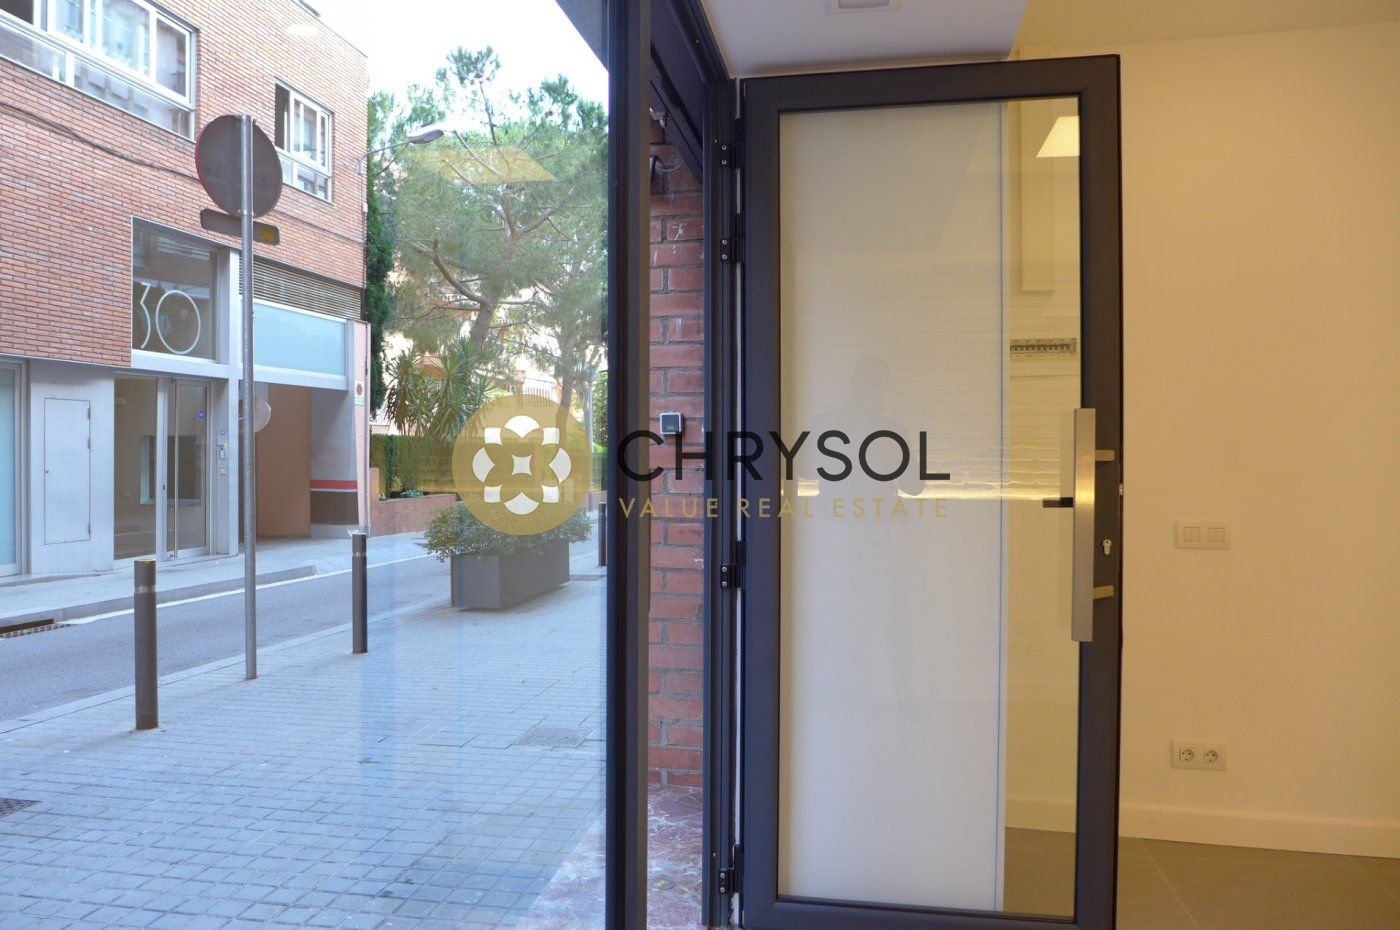 Fotogalería - 9 - Chrysol Value